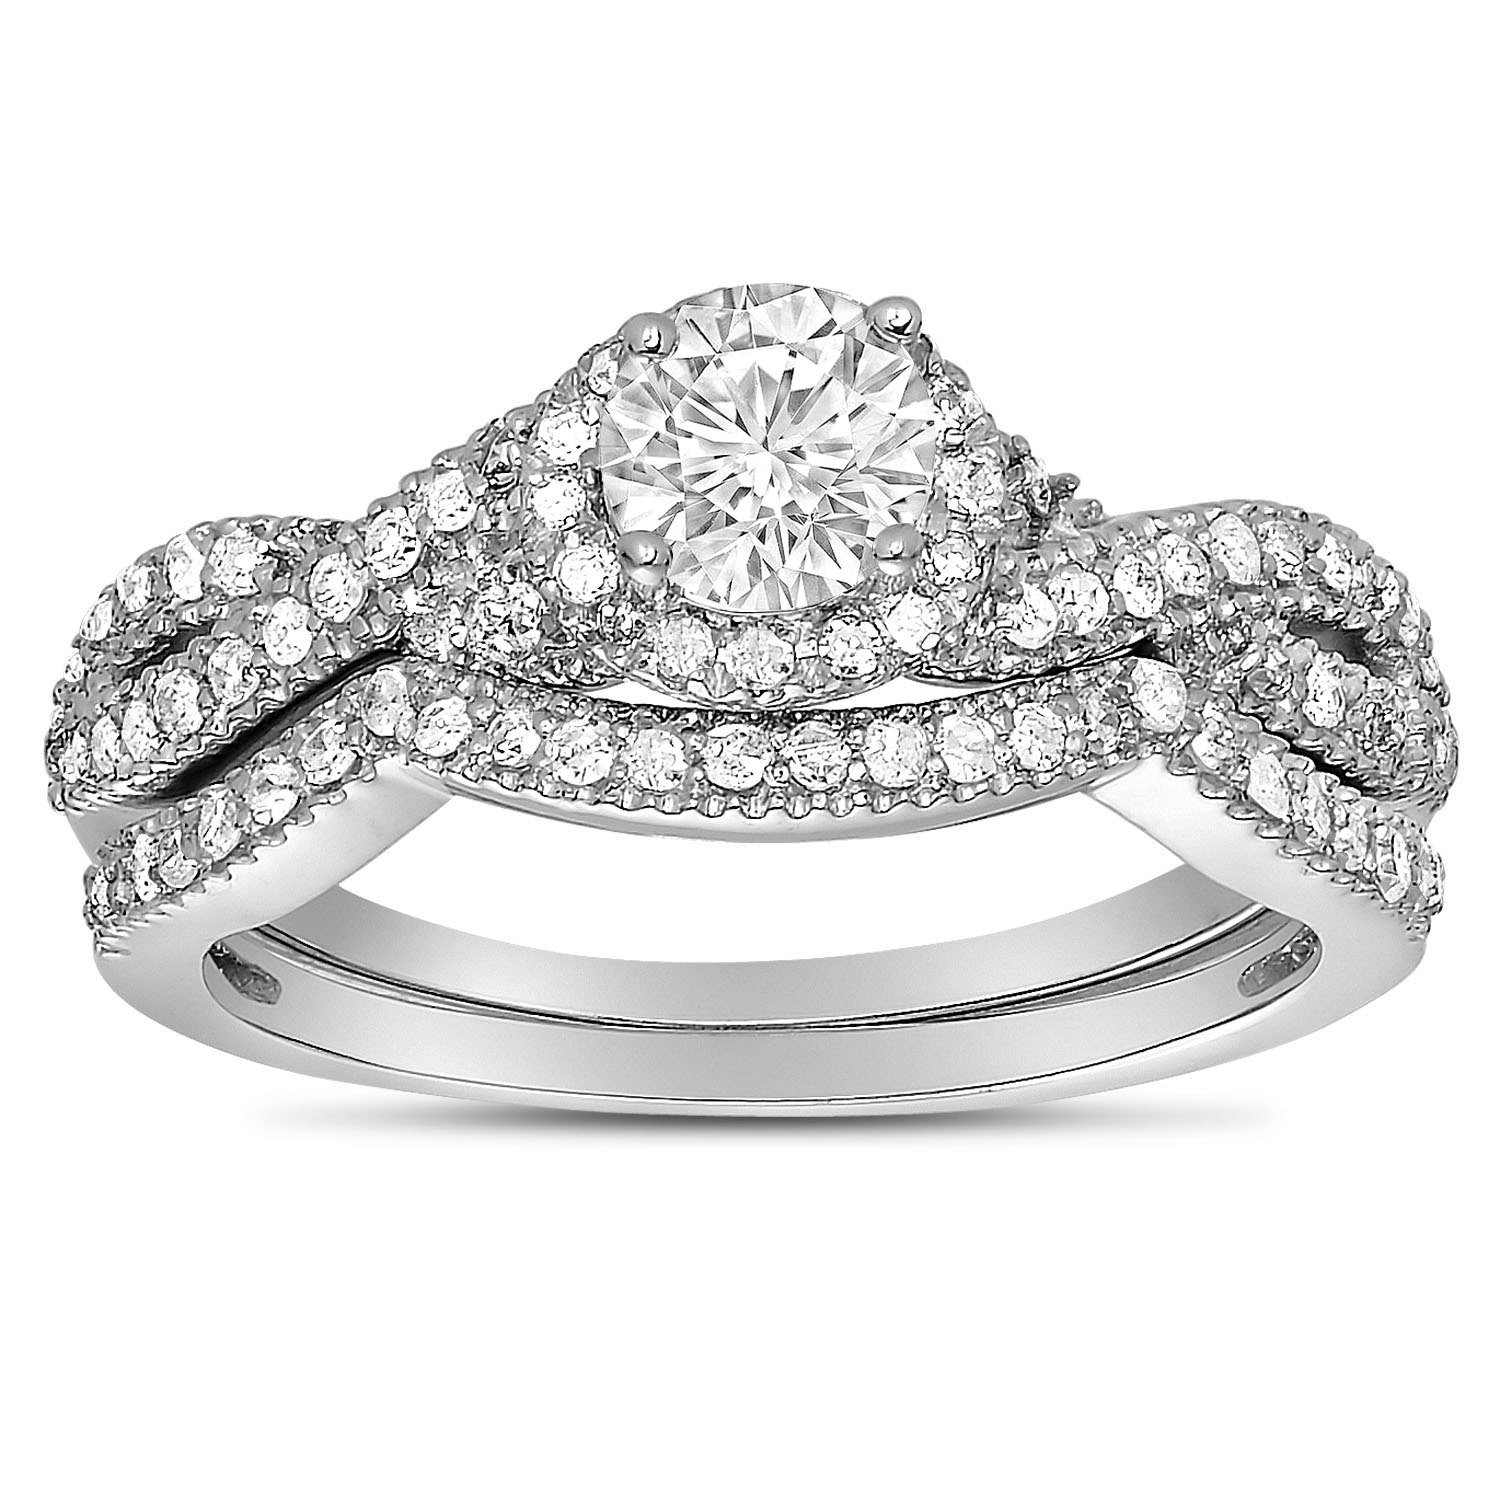 2 carat round diamond infinity wedding ring set in white gold for her - White Gold Wedding Rings For Her